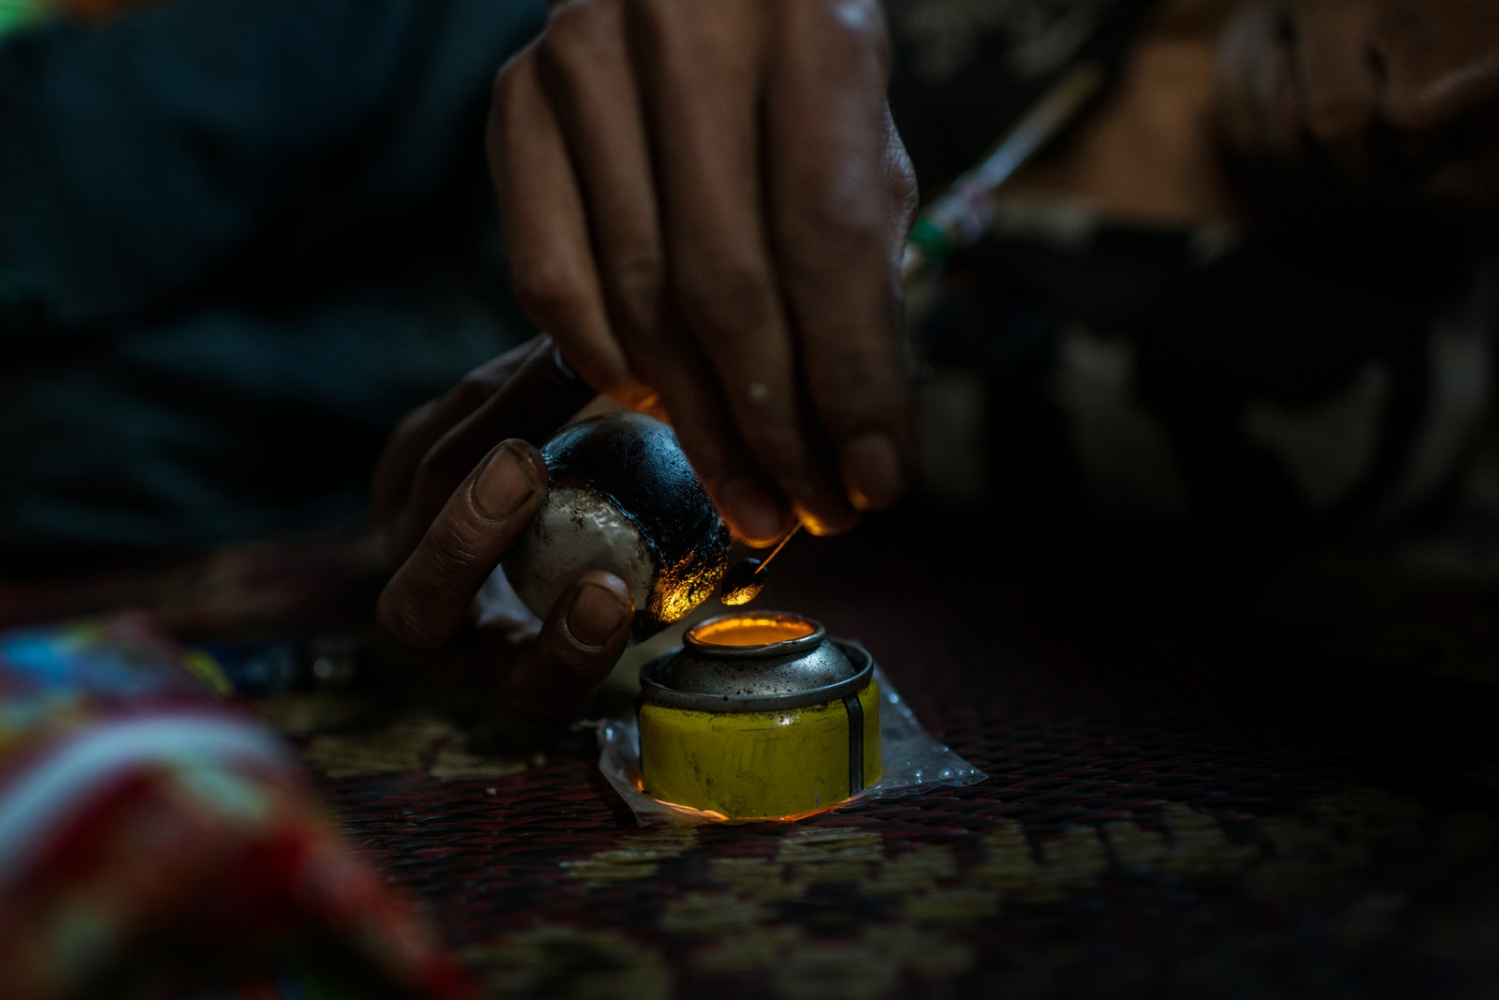 In a neighboring village to the opium farmers the usage of opium is widespread. An active user demonstrates his pipe, lying on the floor lighting it over a small candle.